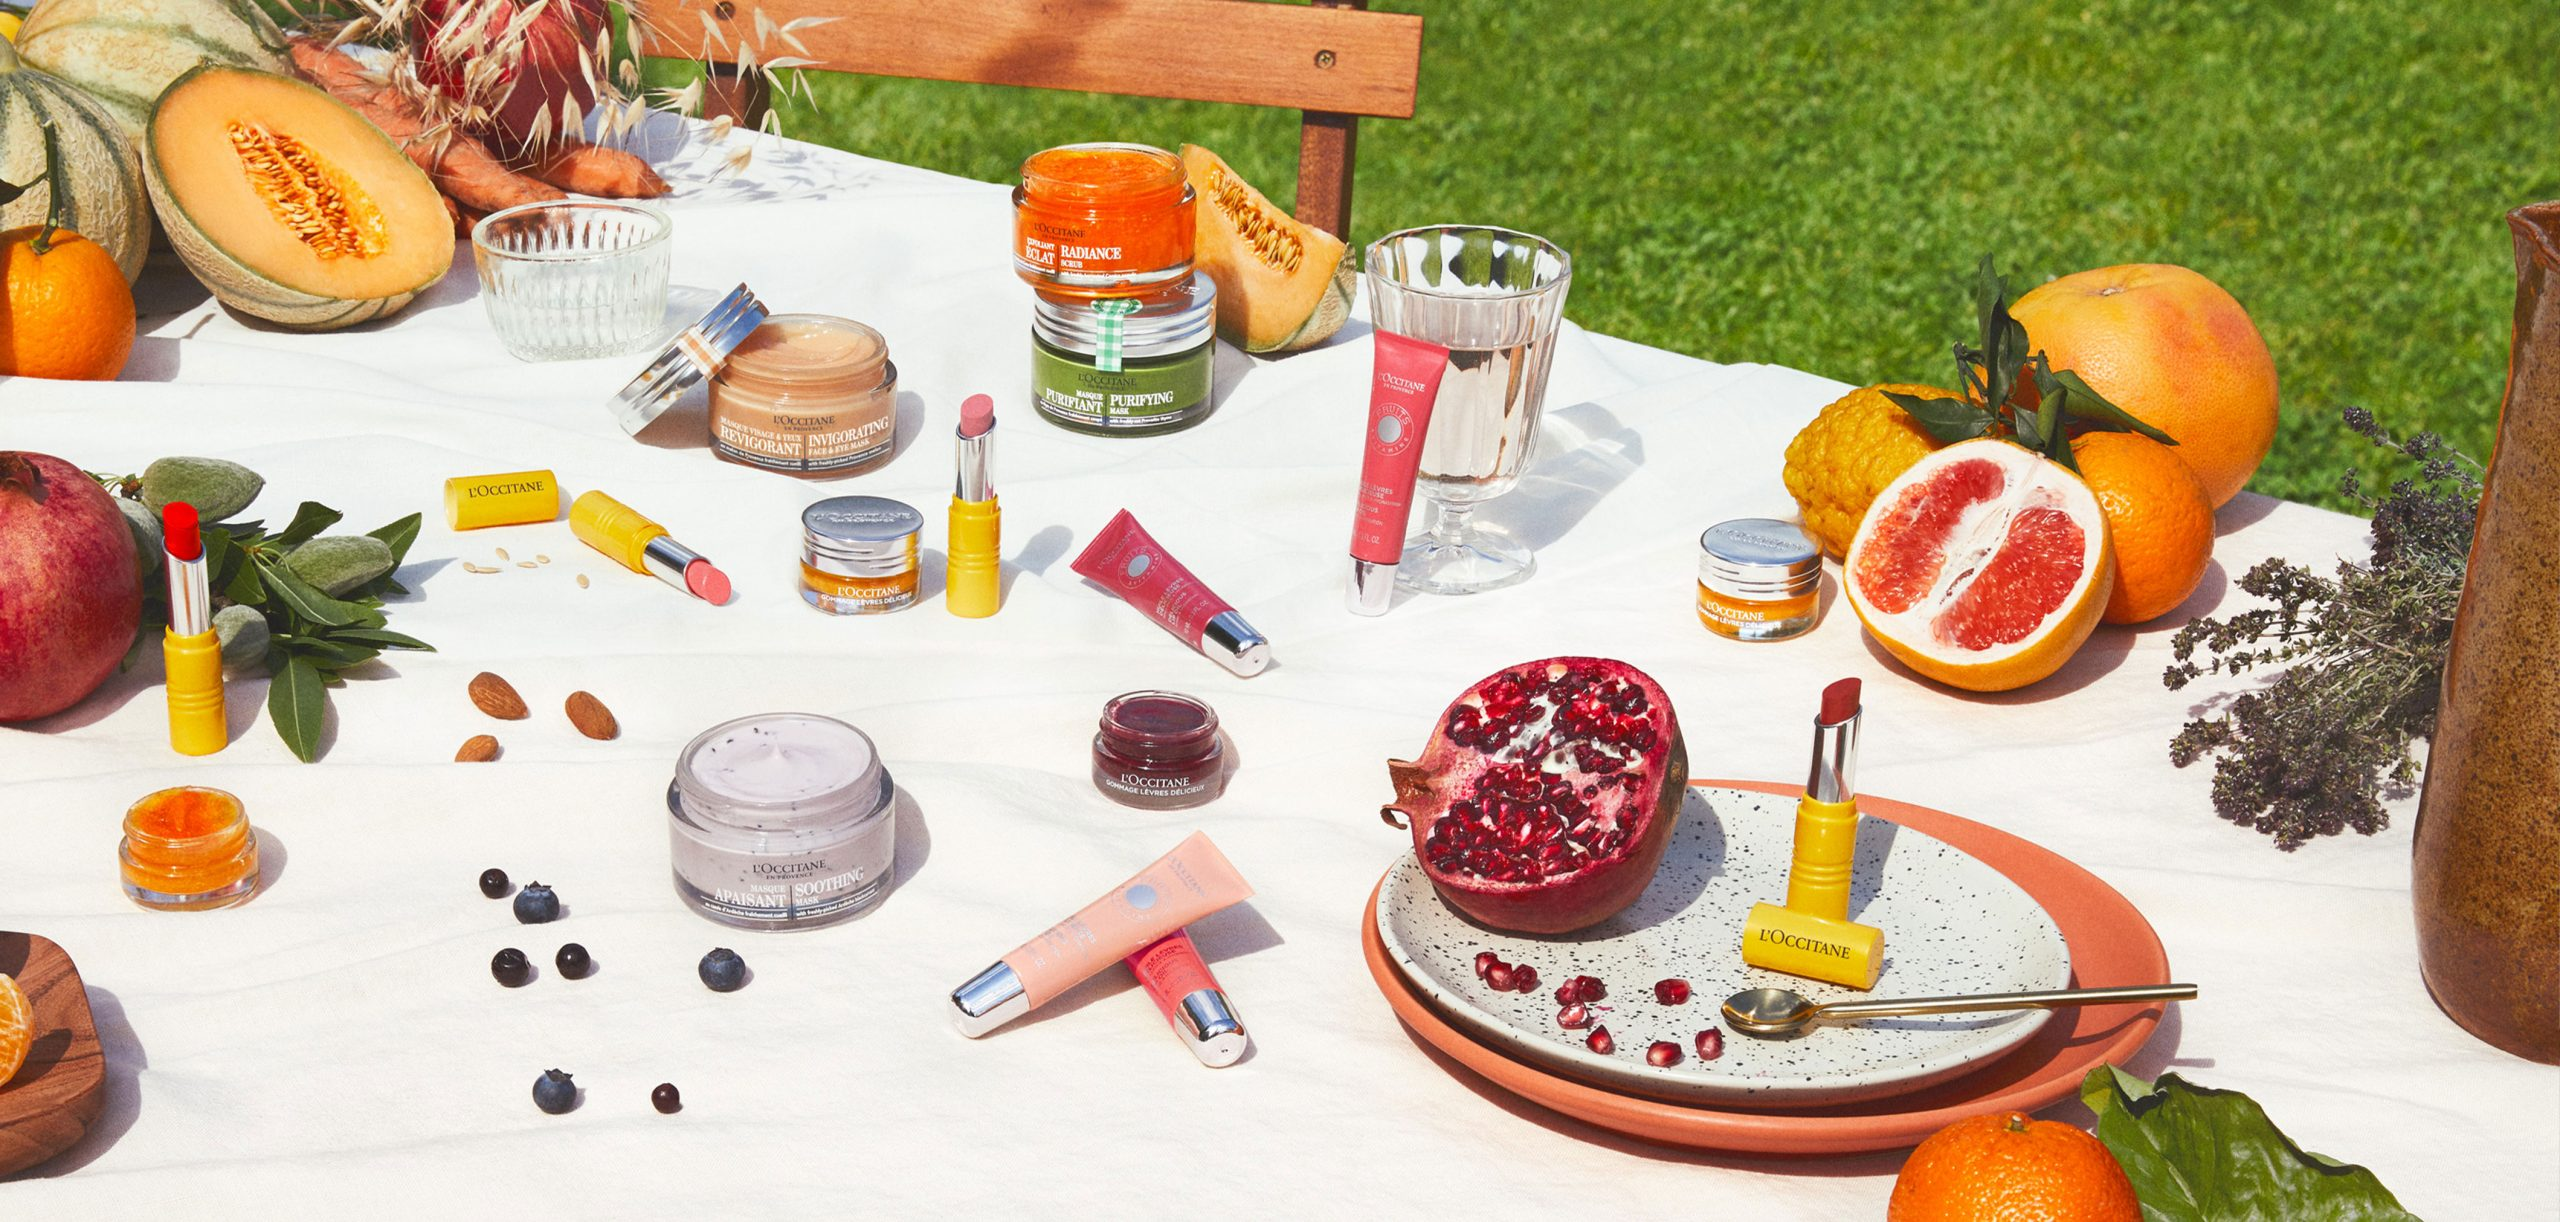 L'Occitane reveal your colors table produits et fruits